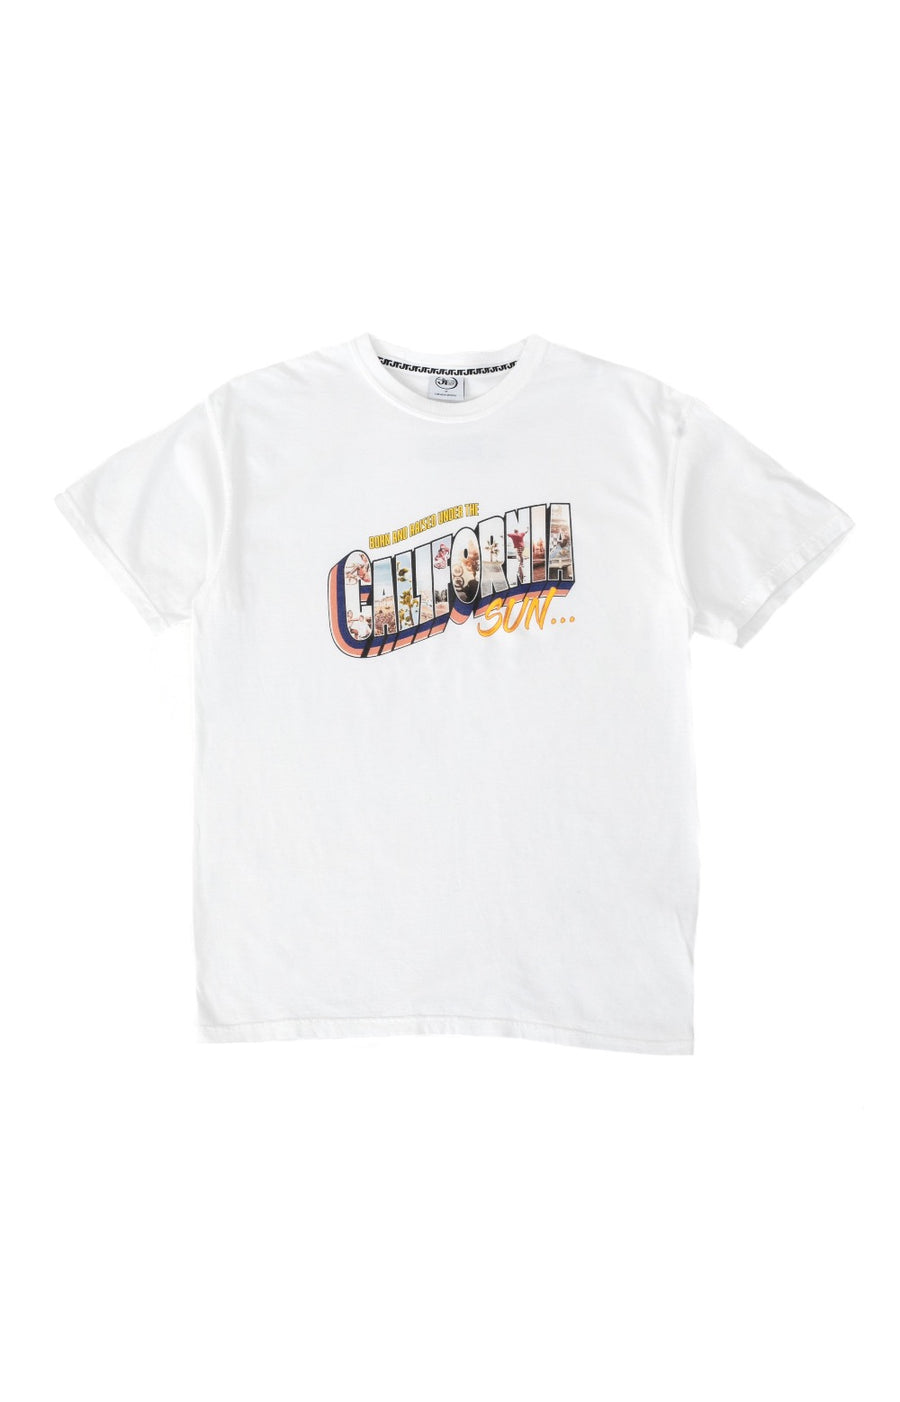 Born and Raised Under the California Sun Tee - White